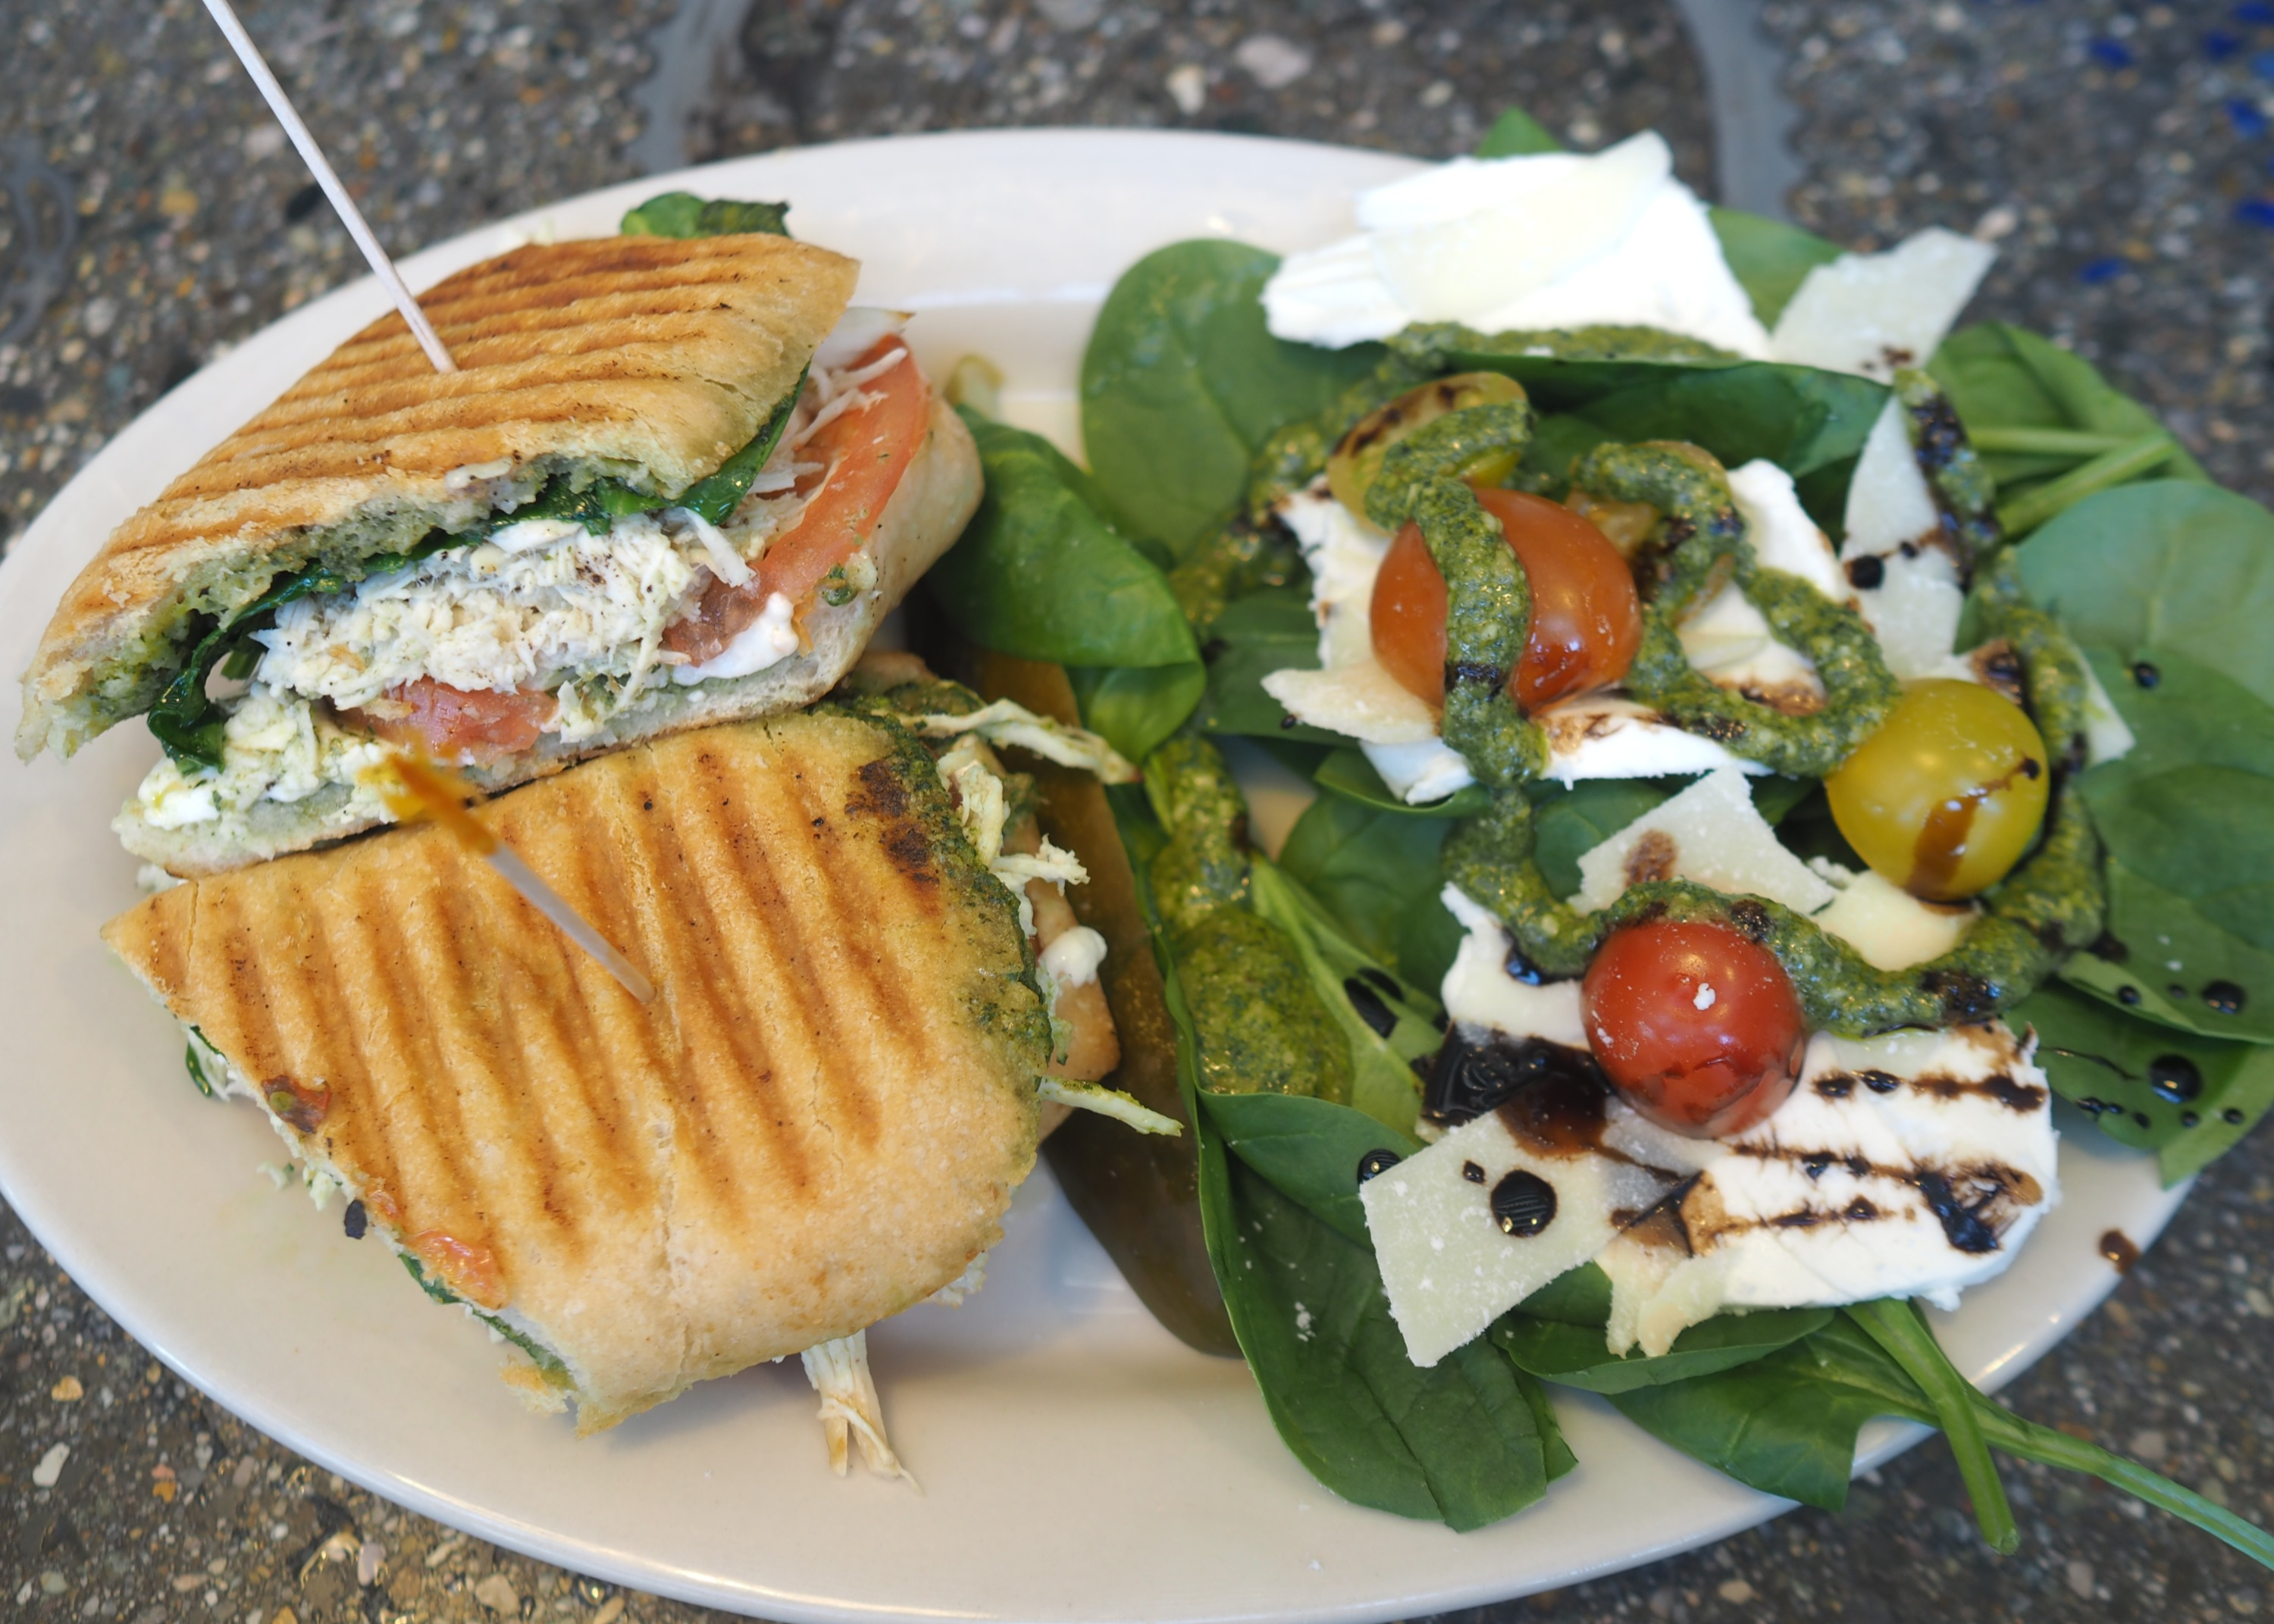 Chicken Pesto Panini with Caprese Salad